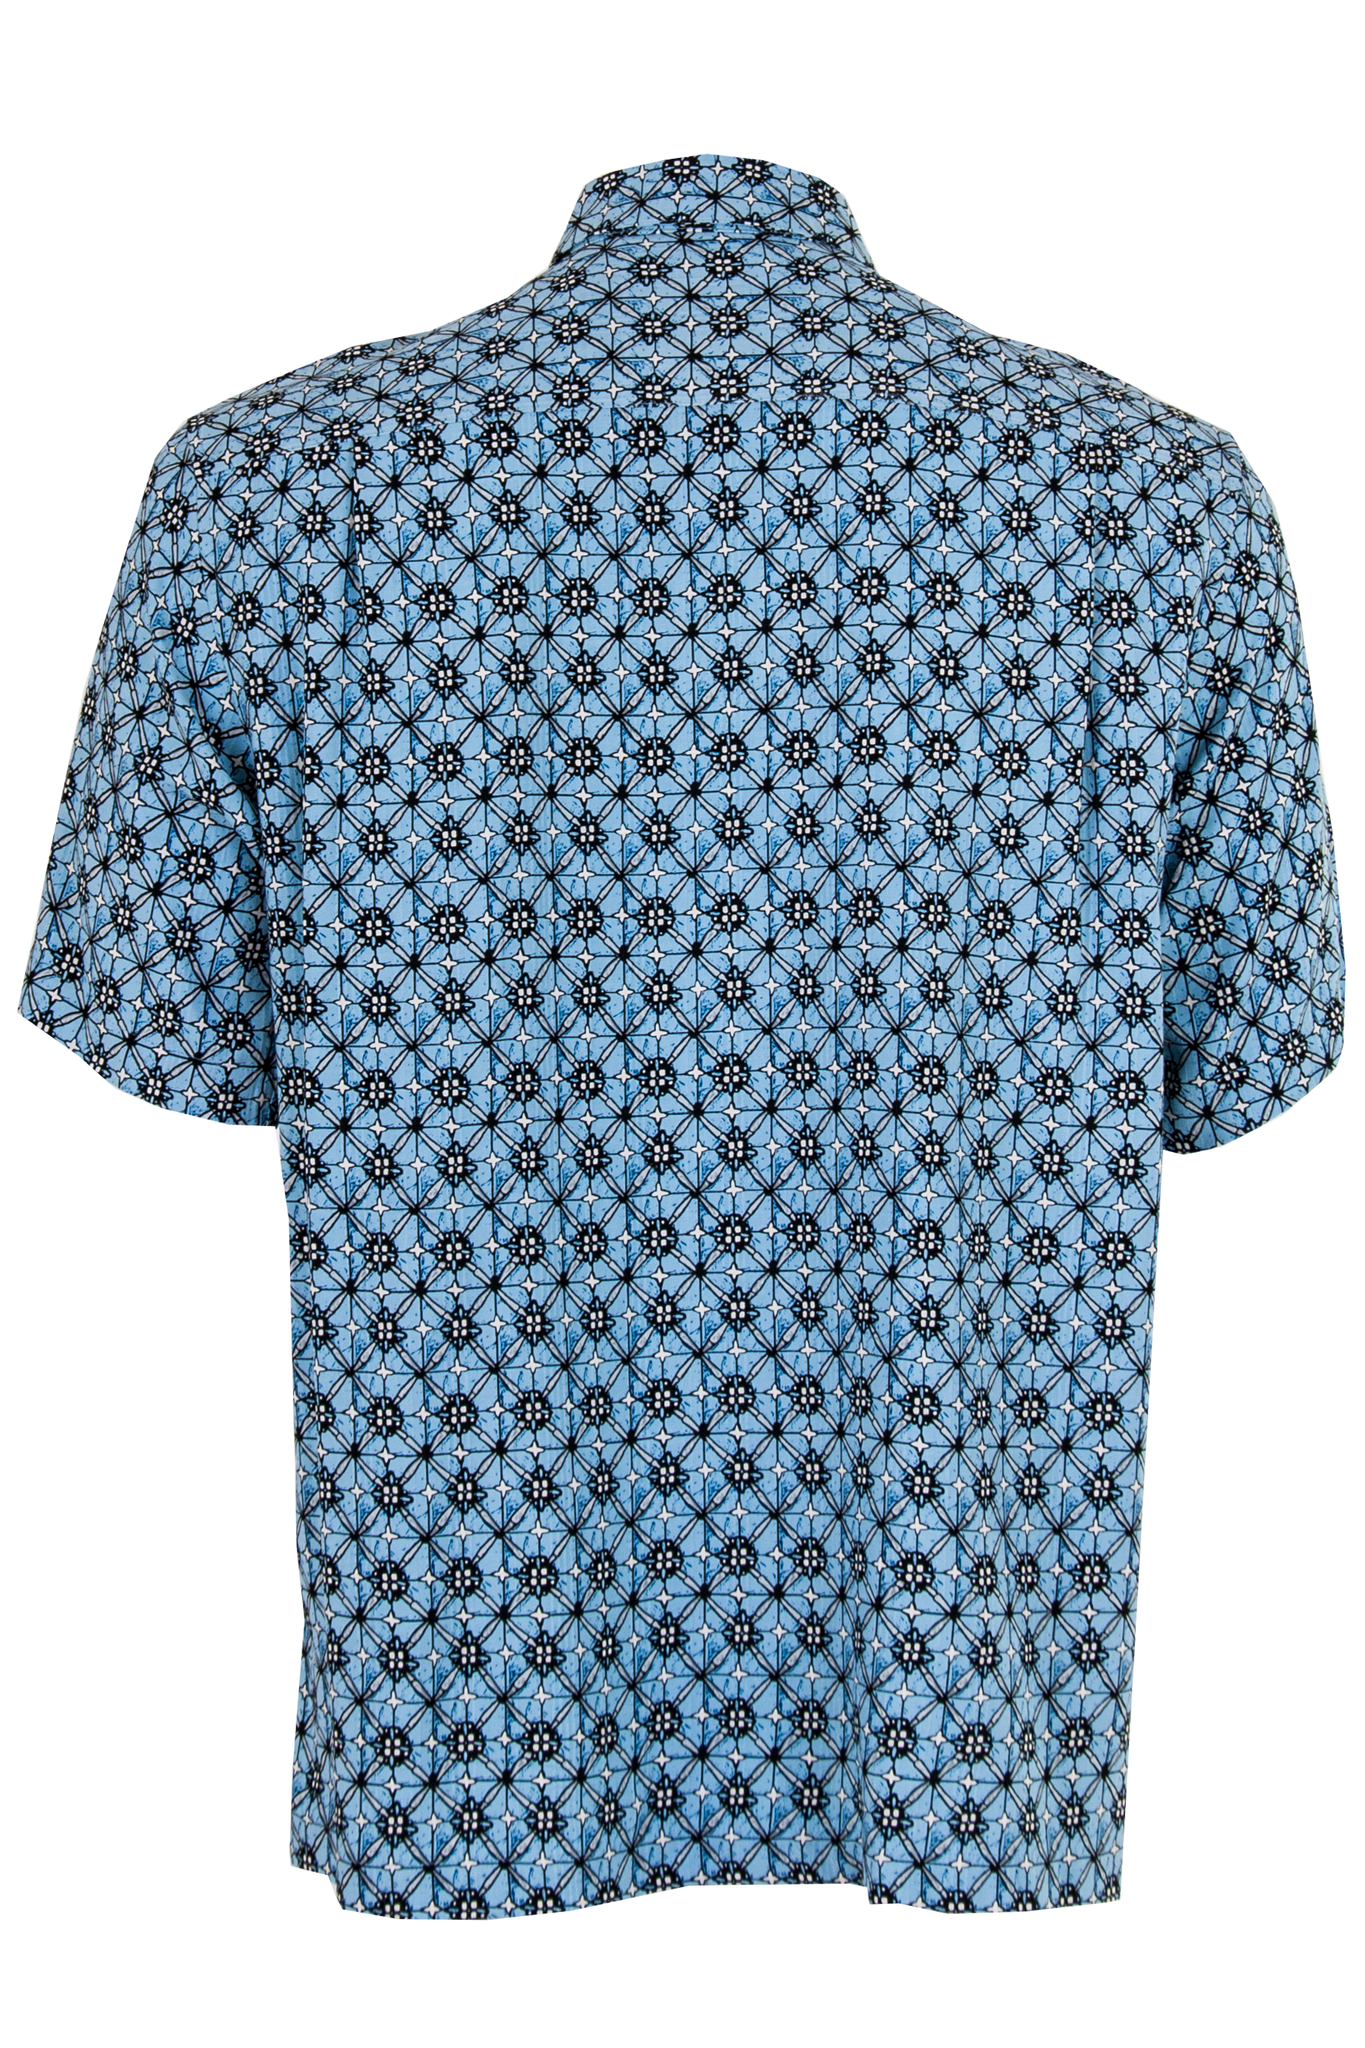 blue printed short sleeve shirt